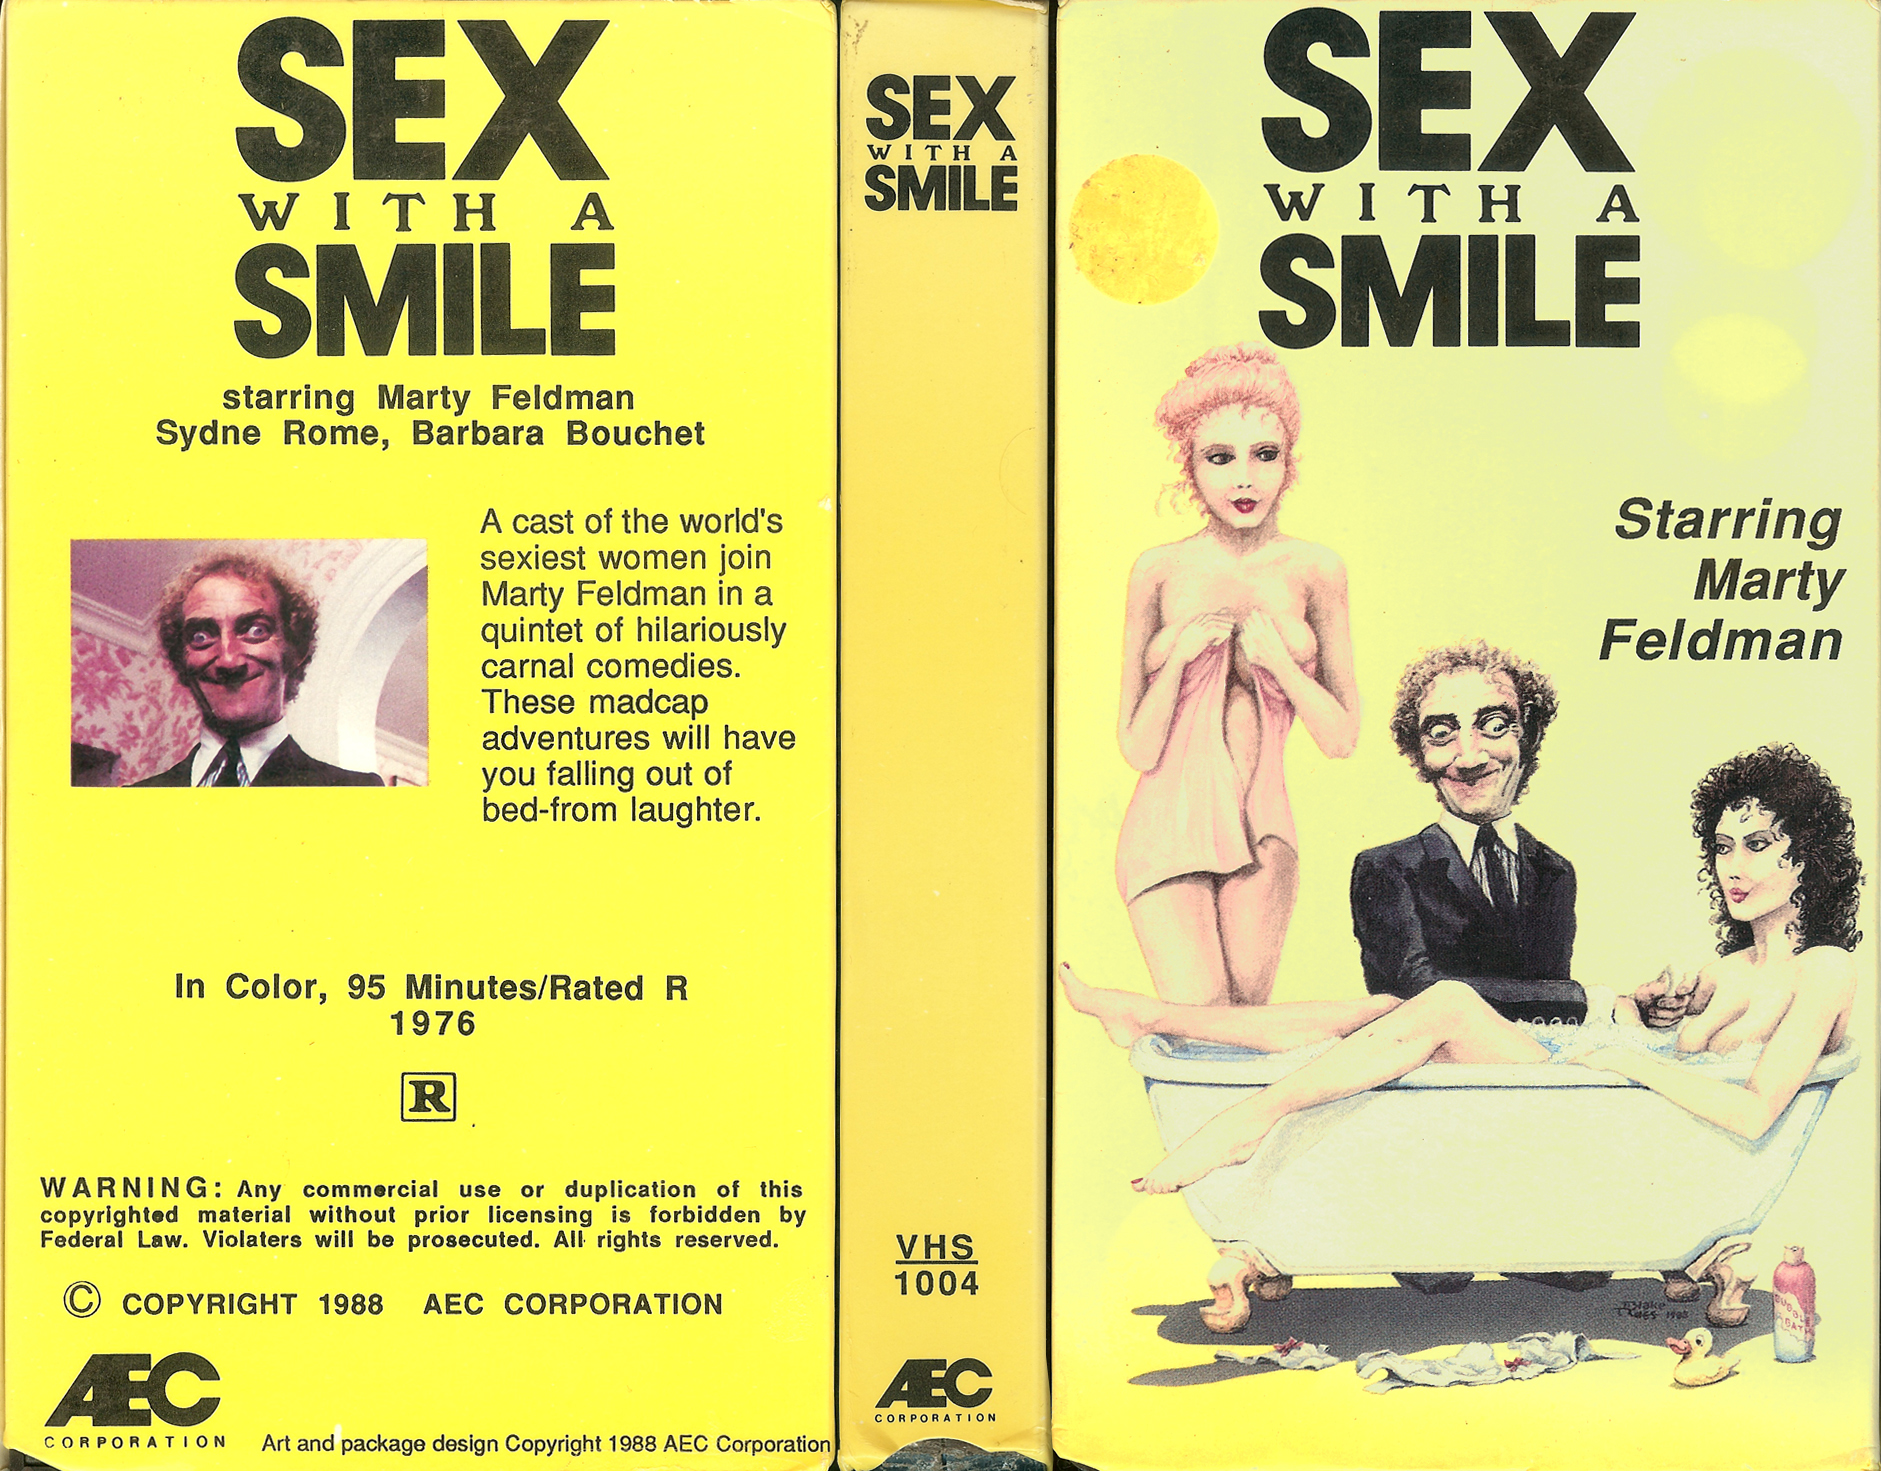 SEX WITH A SMILE STARRING MARTY FELDMAN SEXPLOITATION ... The Encyclopedia of Nude Celebs « free streaming internet tv adult